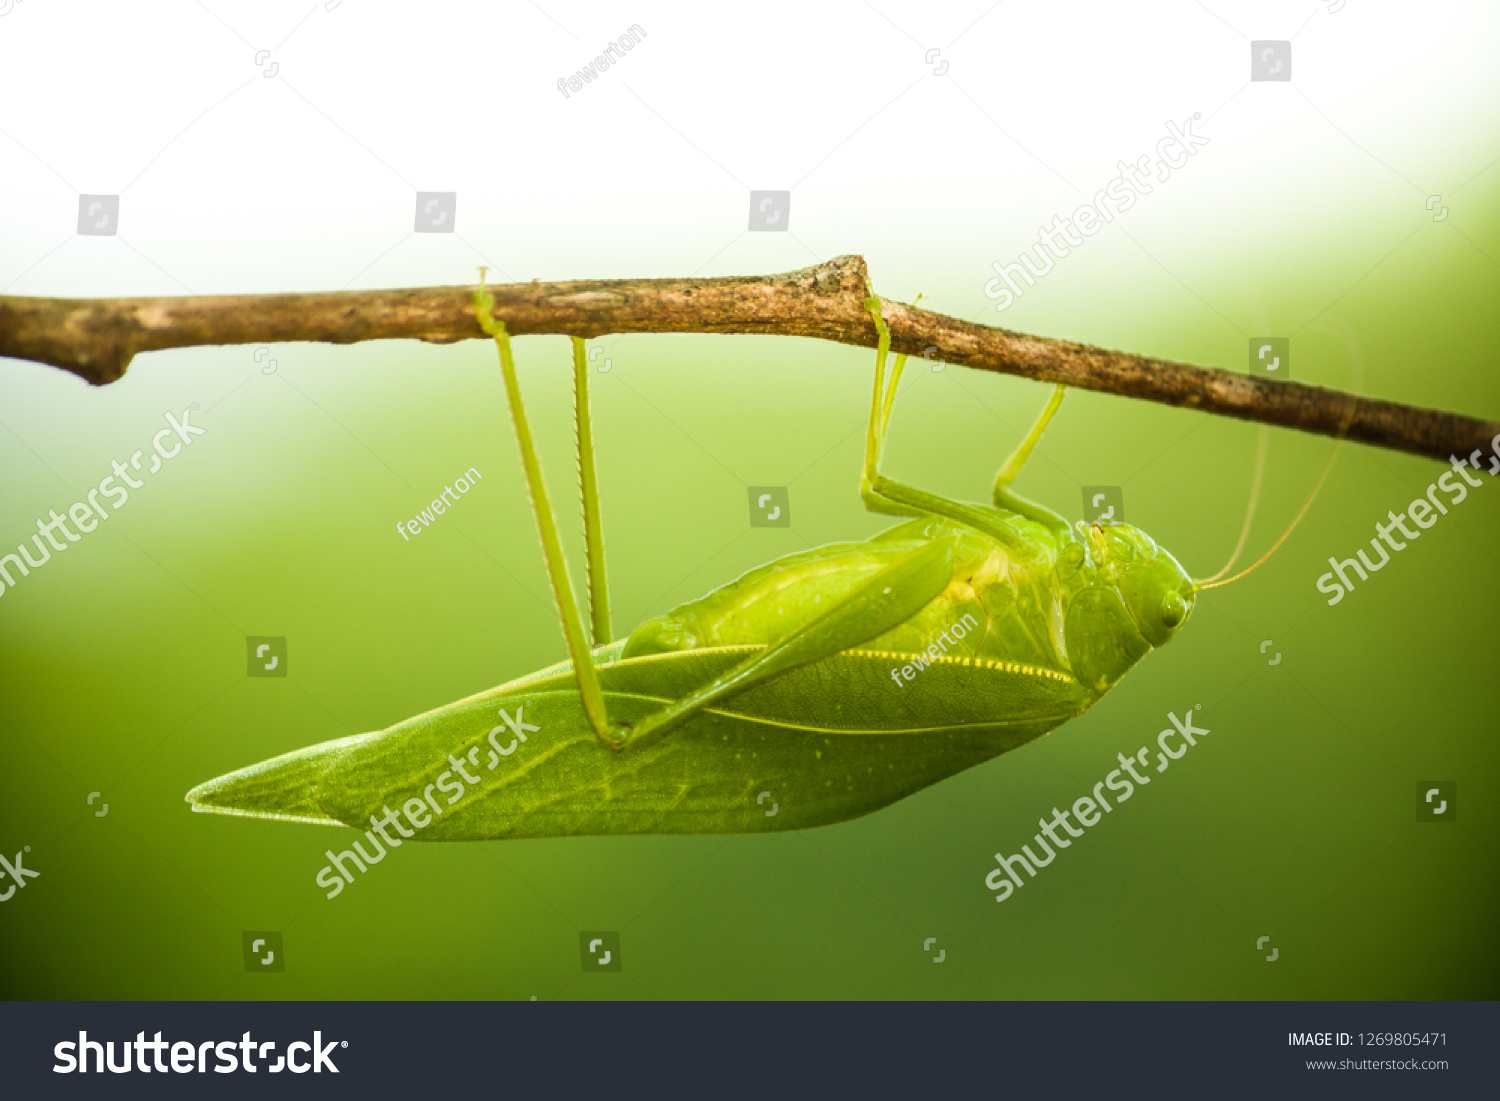 Green bush cricket, katydid or long-horned grasshopper (insect family Tettigoniidae) attached to a tree branch wooden stick macro closeup photo with light background out of focus. #1269805471